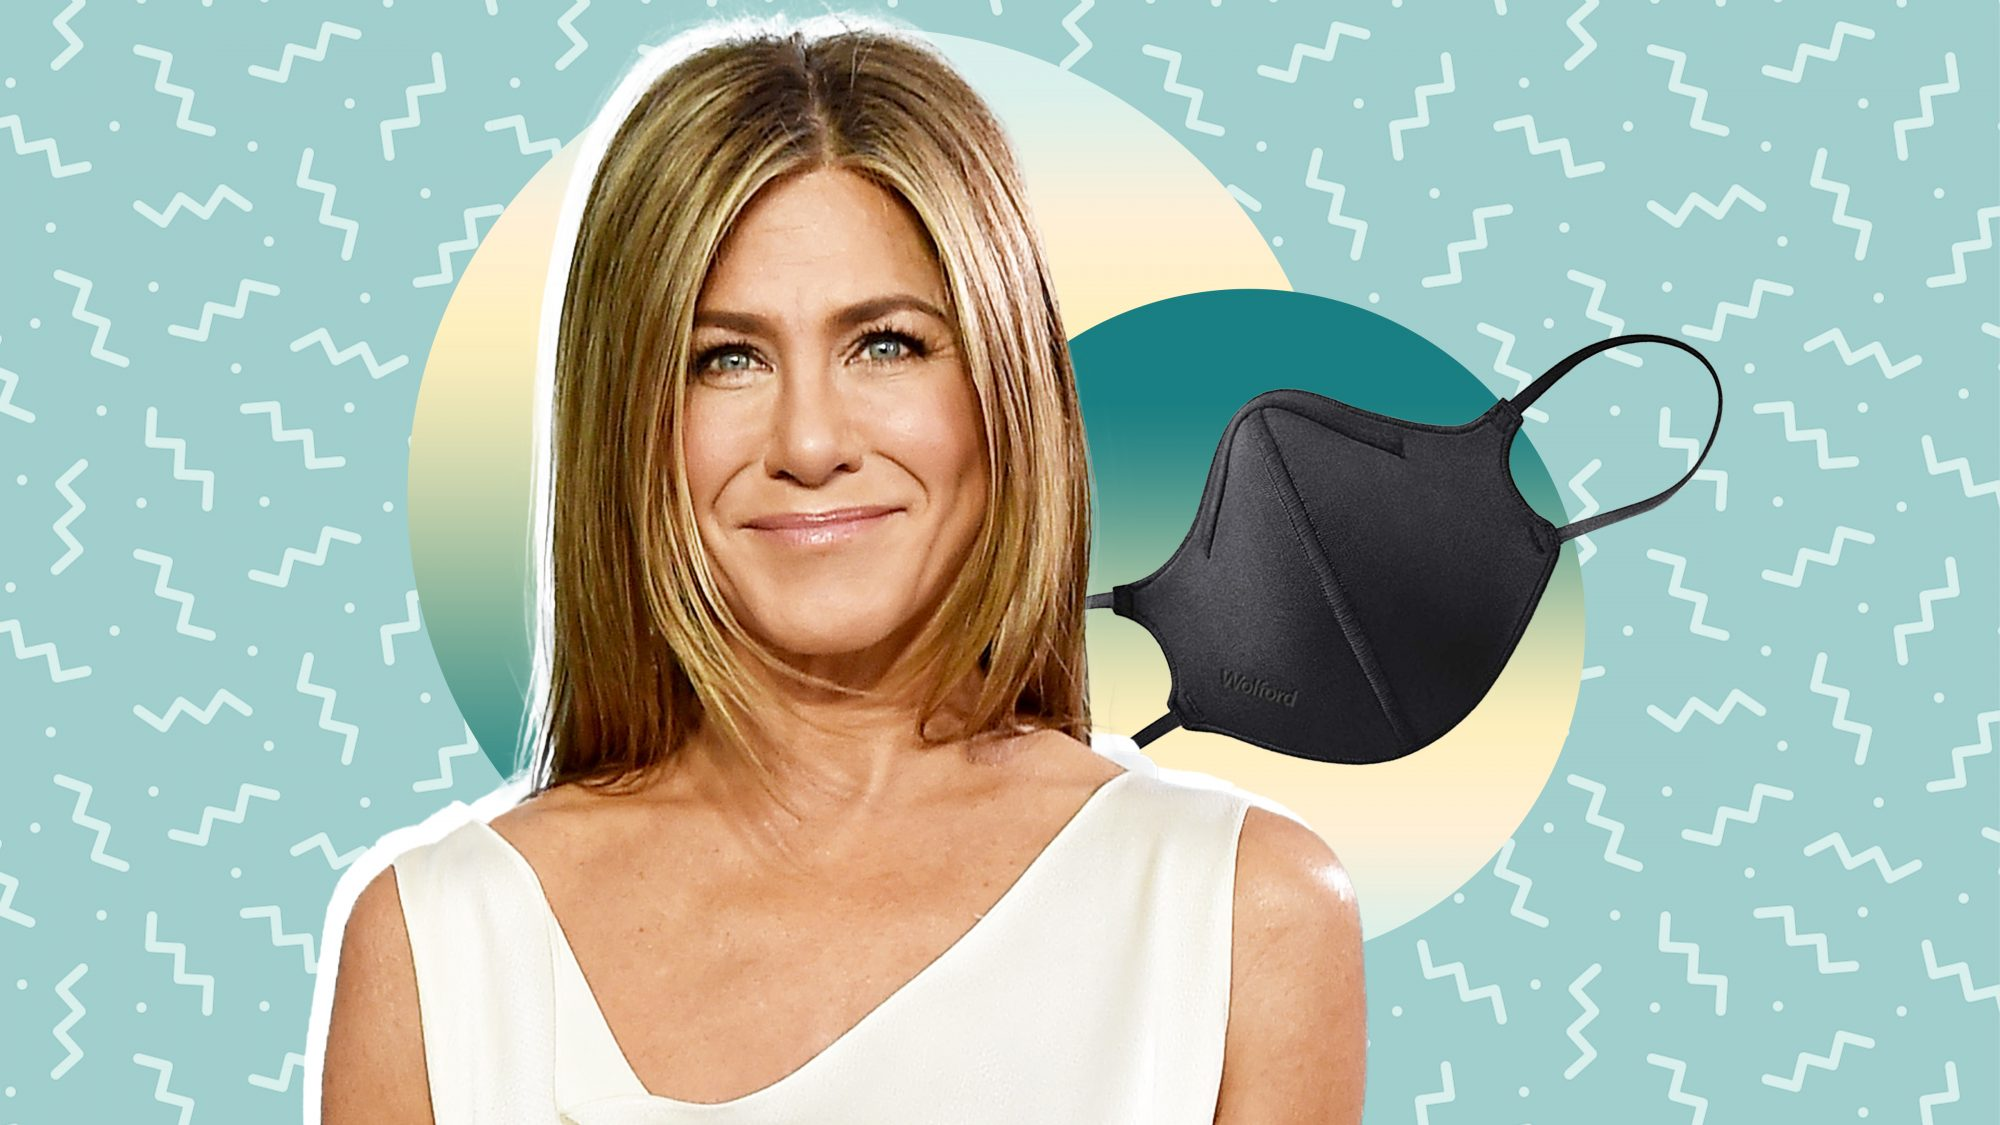 The-Luxe-Face-Mask-Jennifer-Aniston-Made-Famous-Is-50%-Off-on-Amazon-GettyImages-1200660534